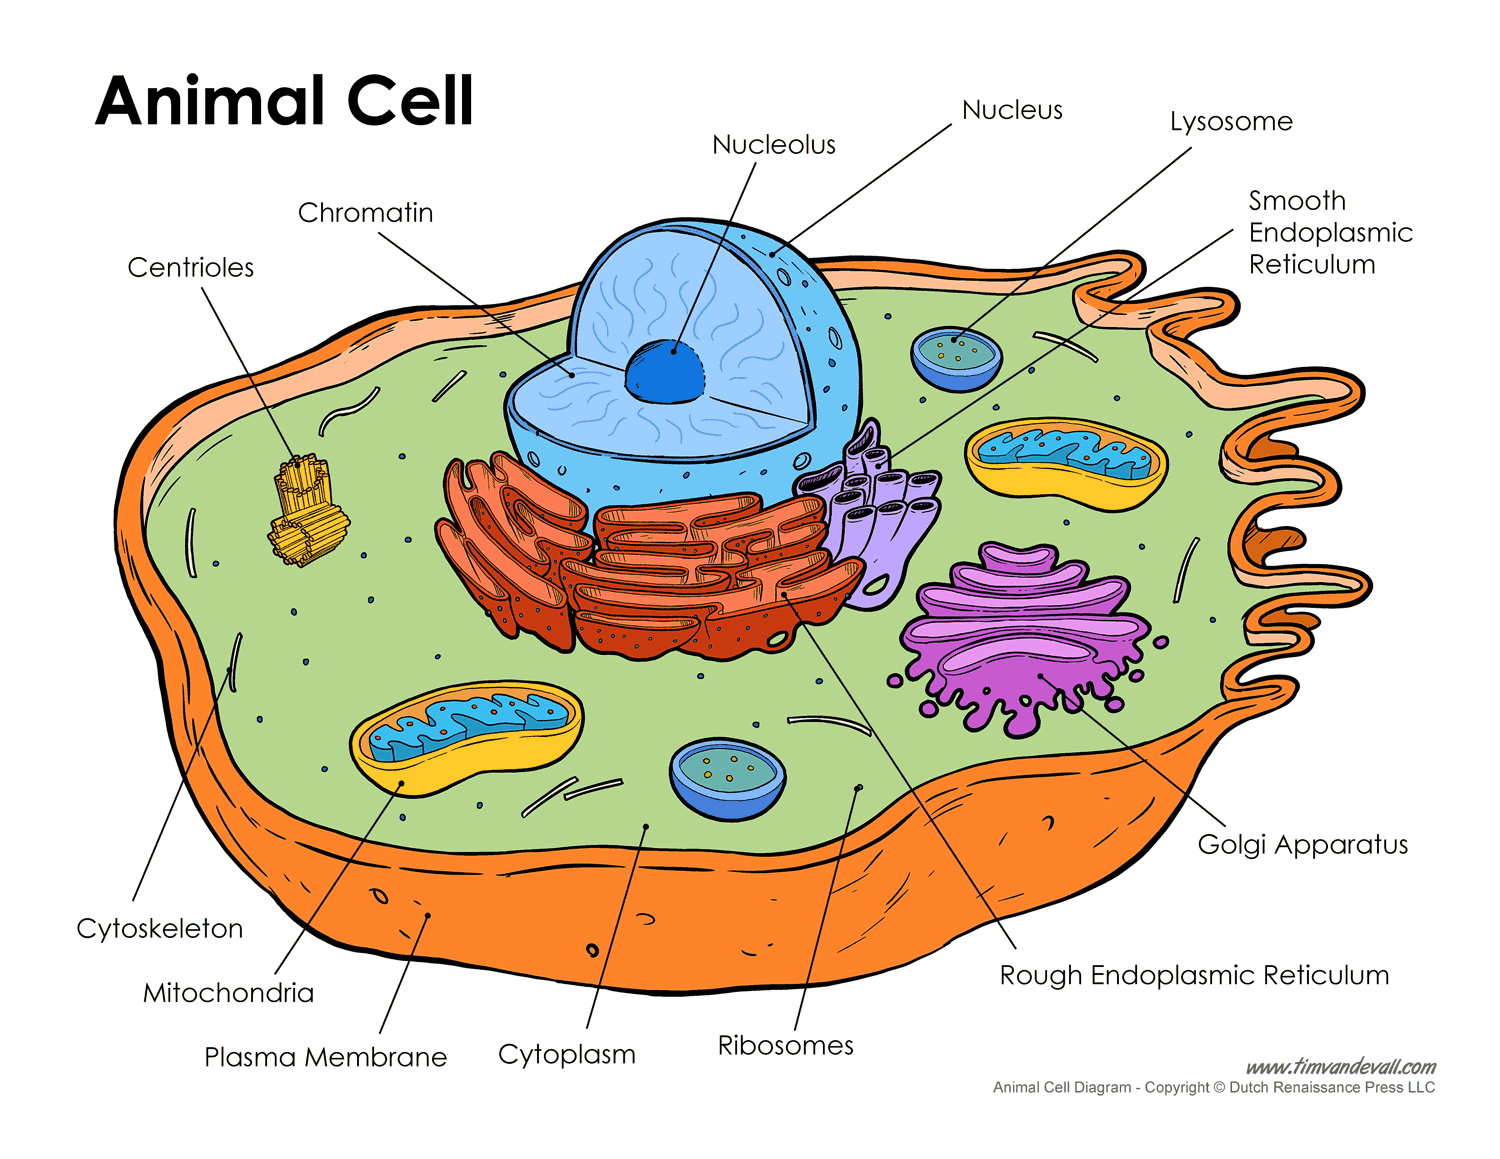 Pin by Yugobeppu on Kids | Animal cell, Animal cell parts ...